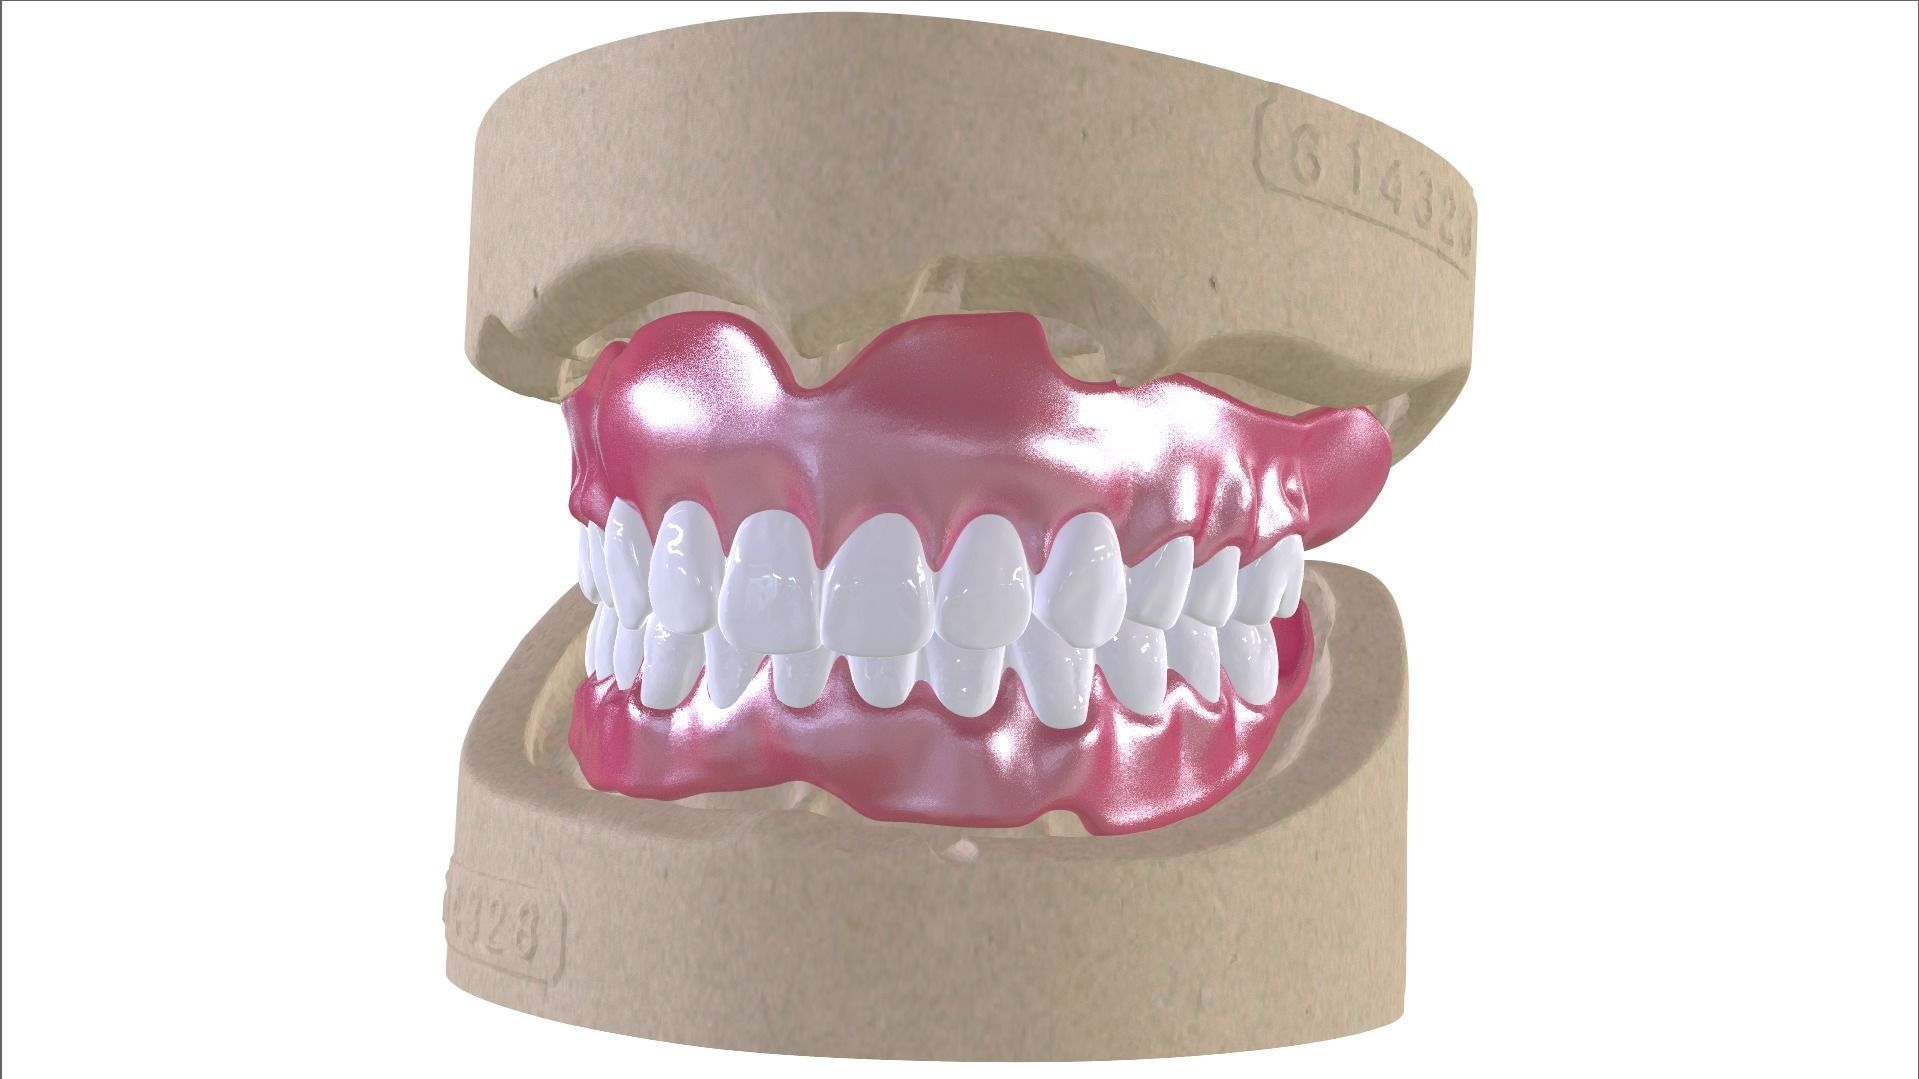 Digital Full Dentures with Combined Glue-in Teeth Arch